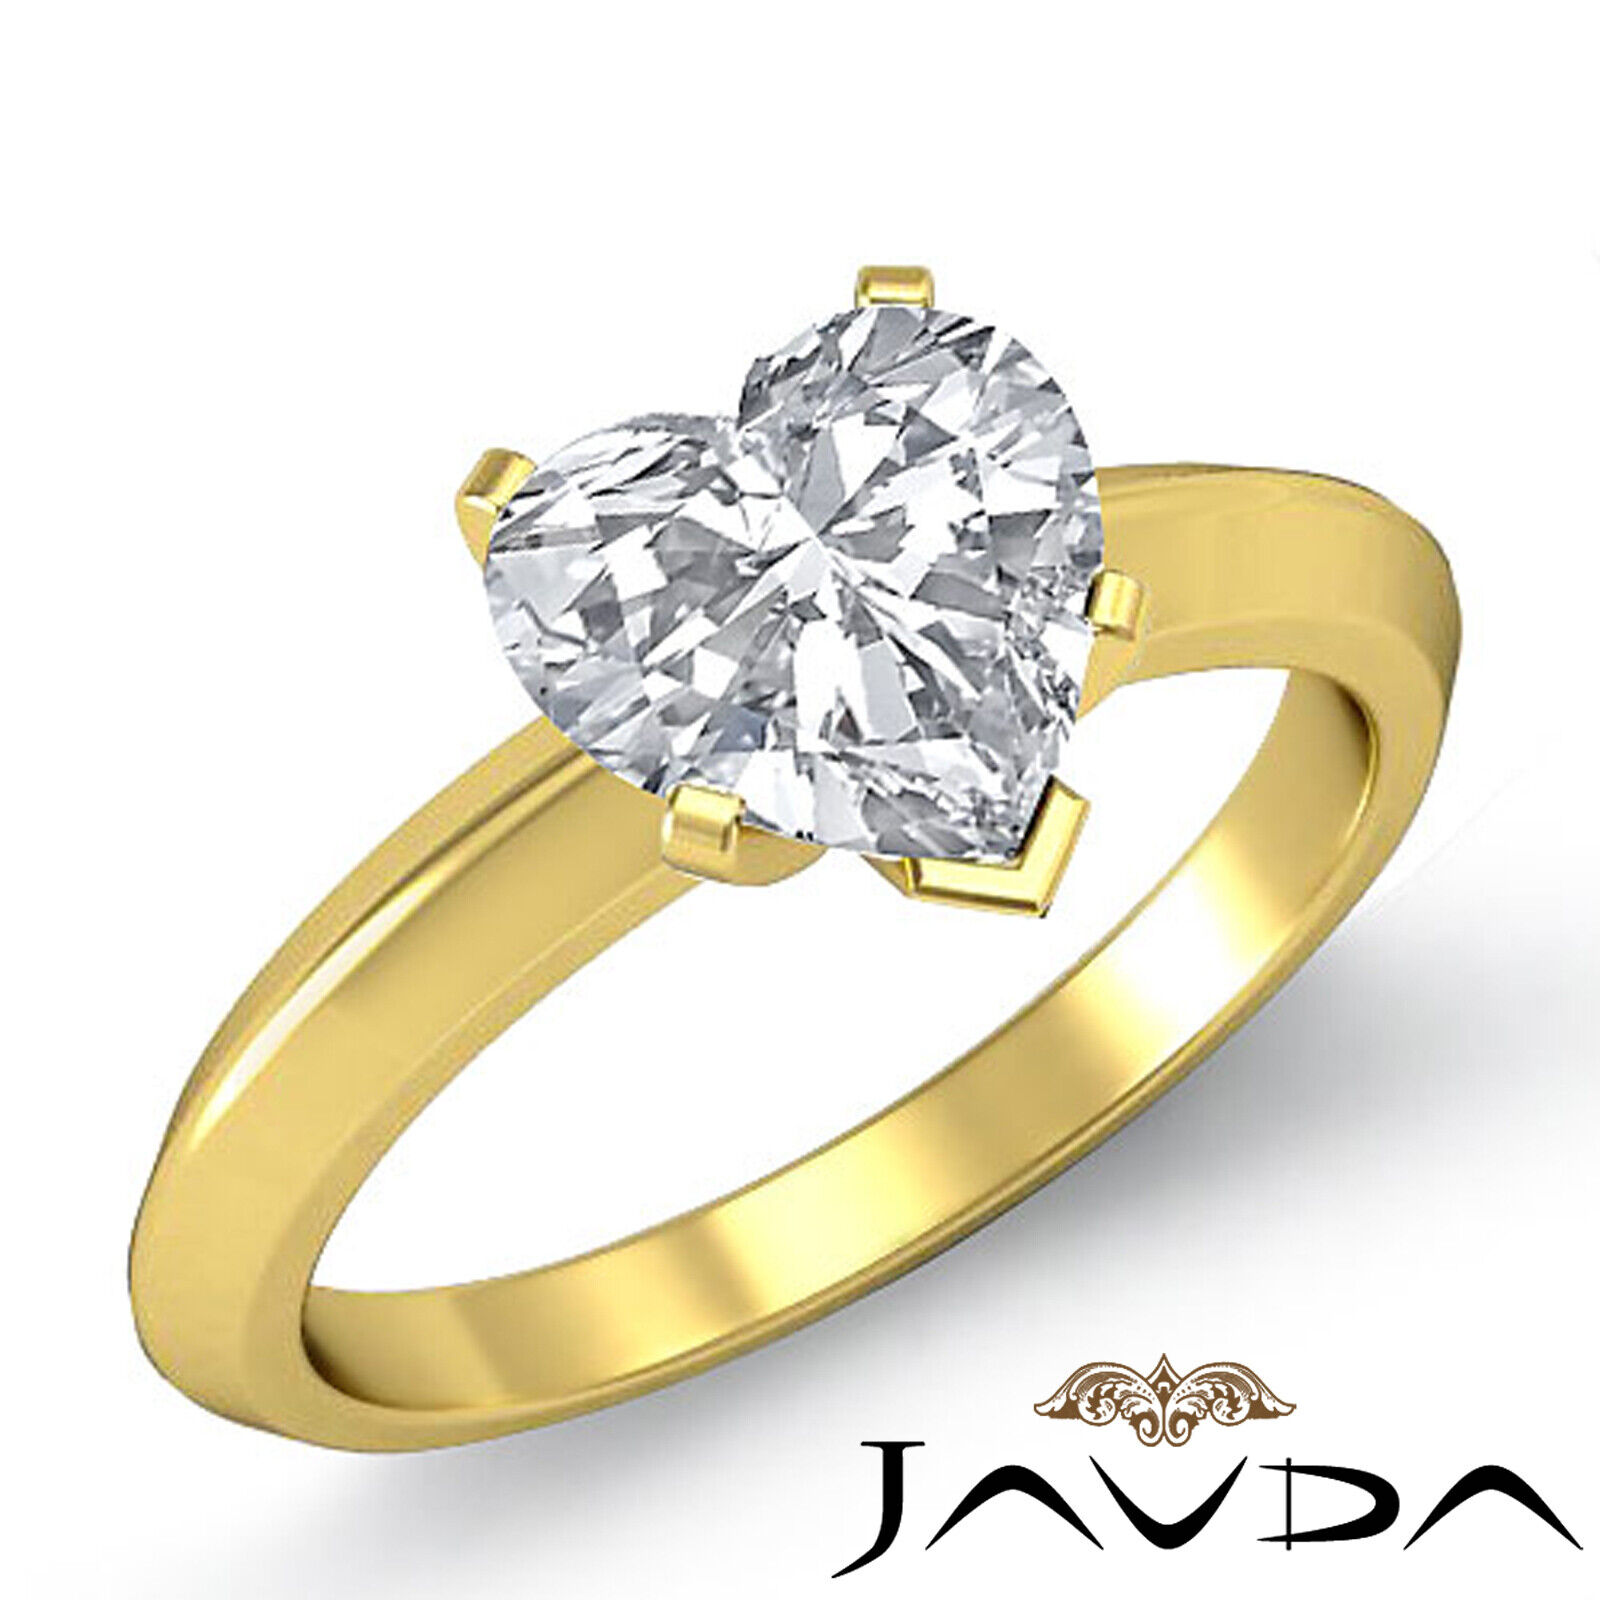 2.5mm Knife Edge Solitaire Heart Diamond Engagement GIA Certified F VS2 0.56 ct. 1